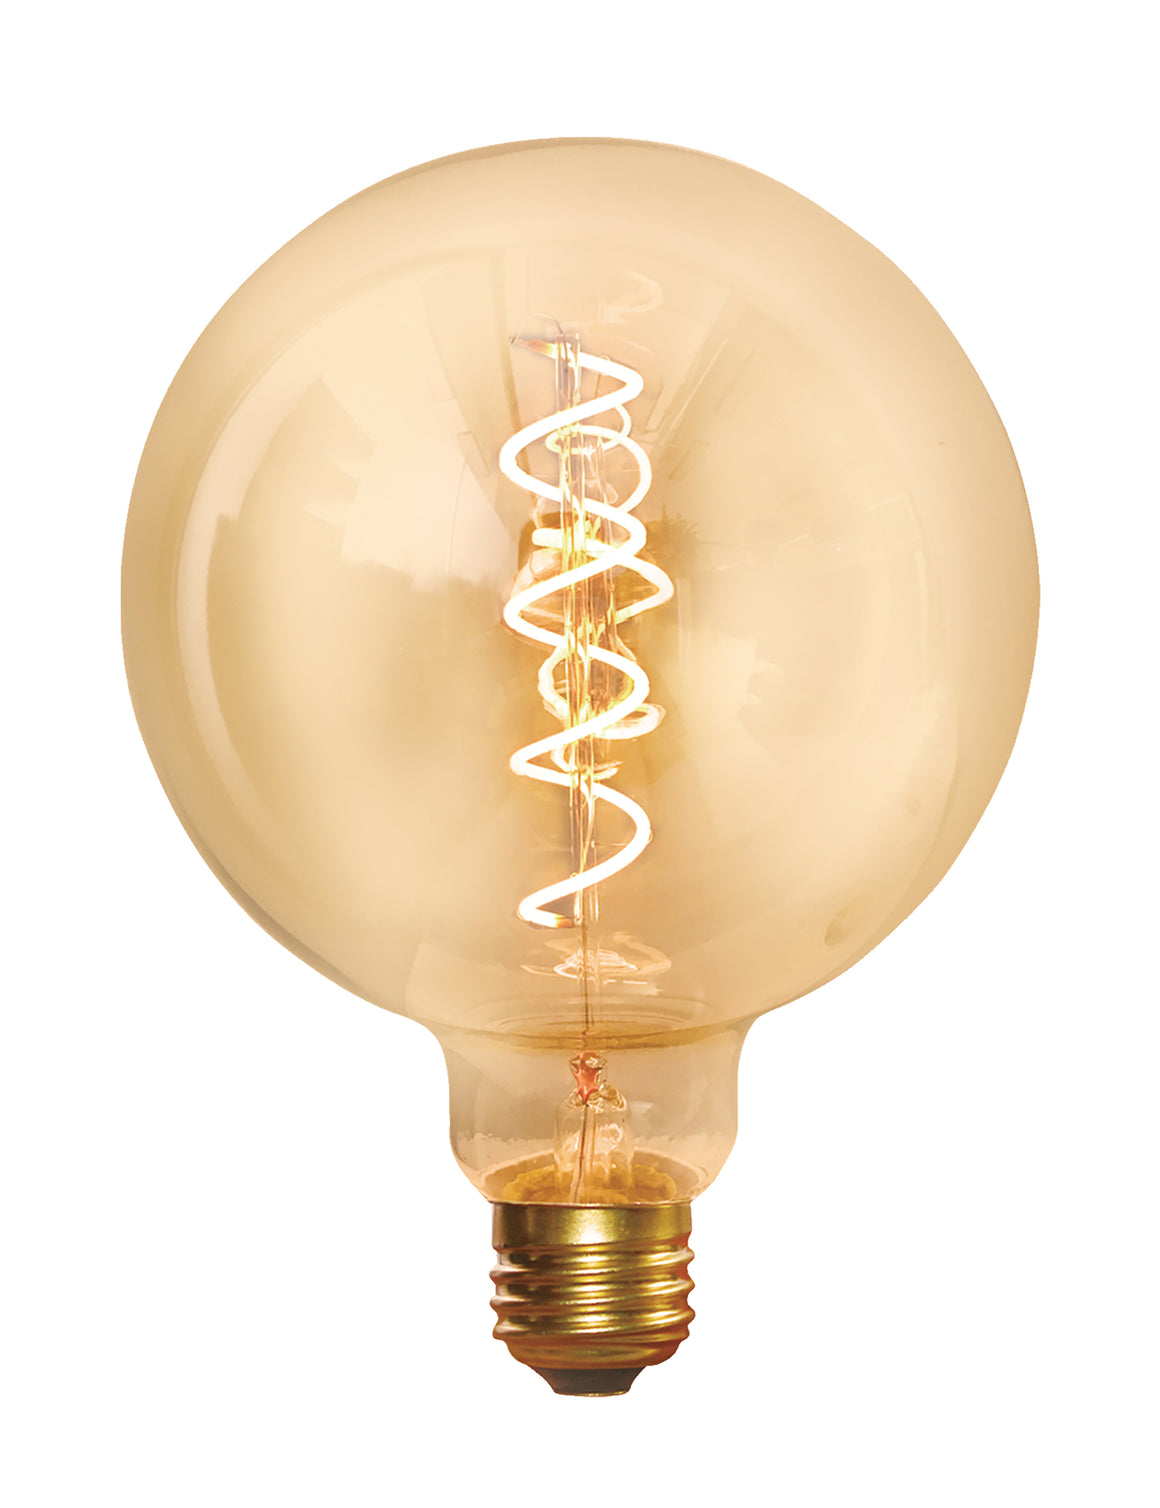 Vintage Spiral LED Edison Bulb Old Filament Lamp - 5W E27 Small Globe G95 - Amber